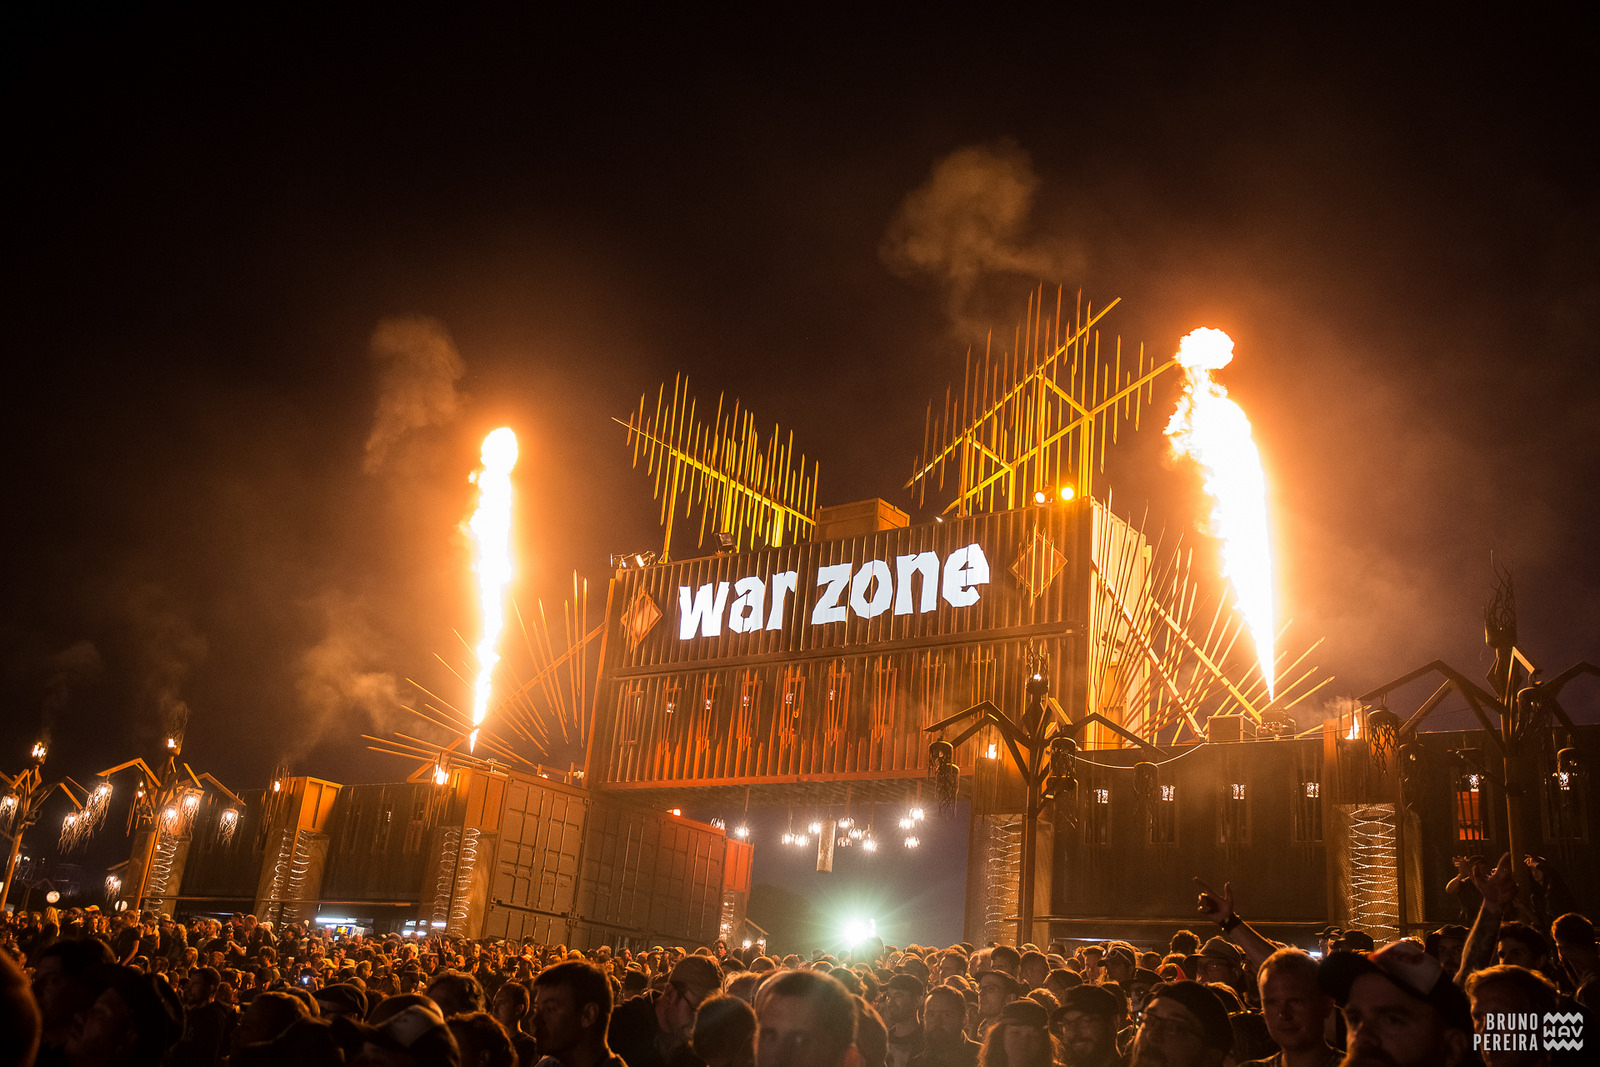 Hellfest 2019 - Valley / Warzone Playlist